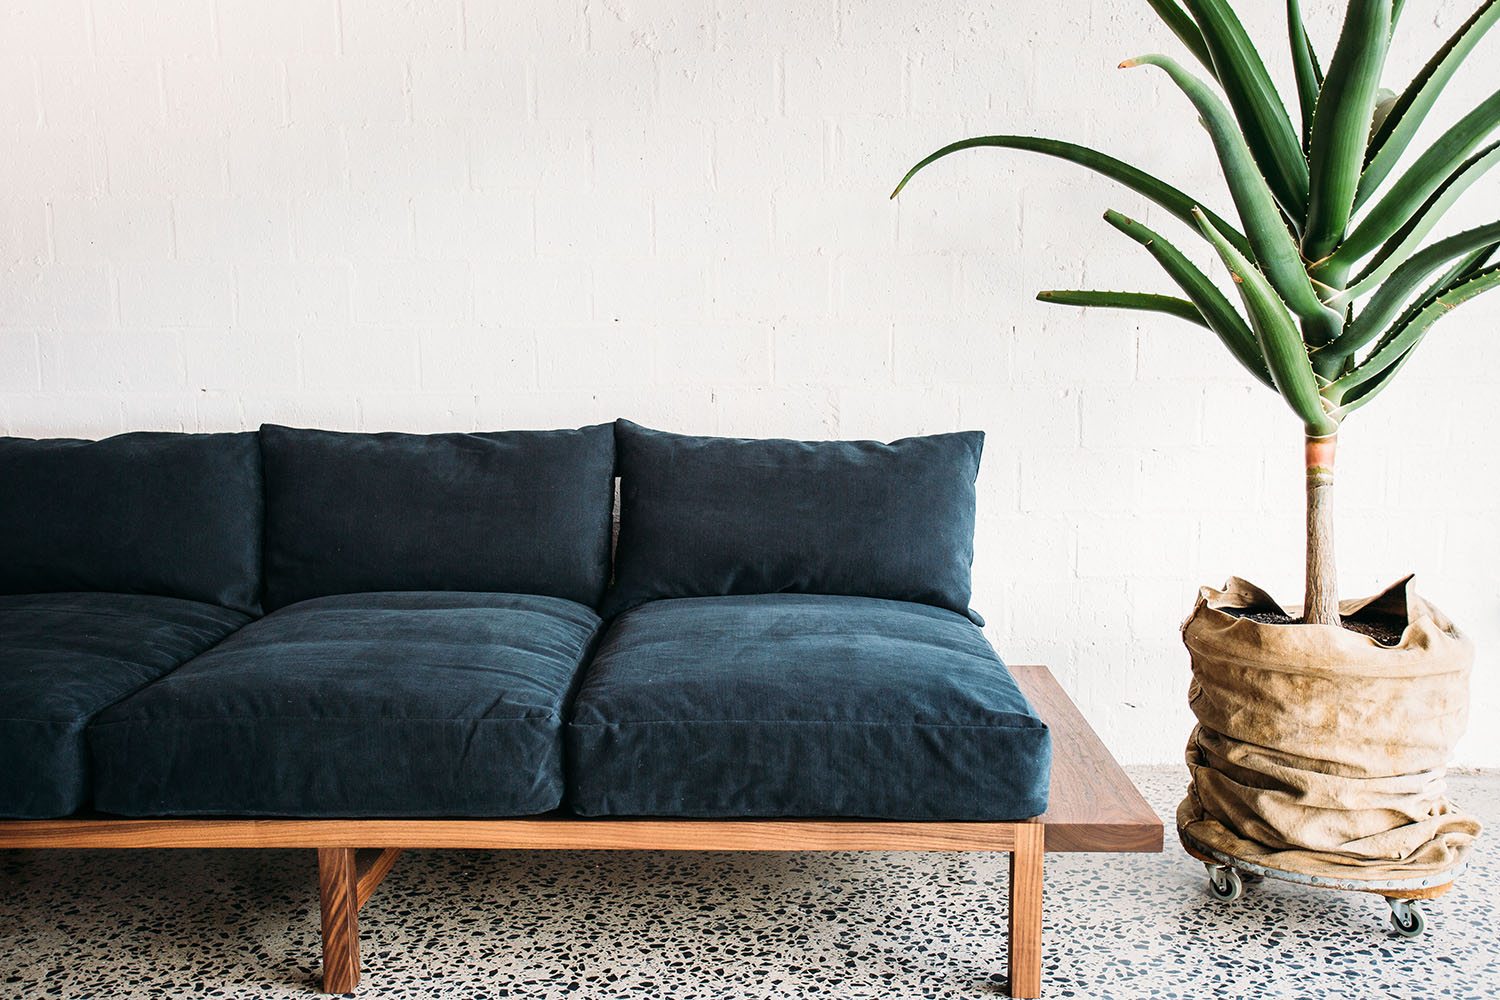 JD.Lee Furniture Interview | Jeremy Lee On Inspiration & Design